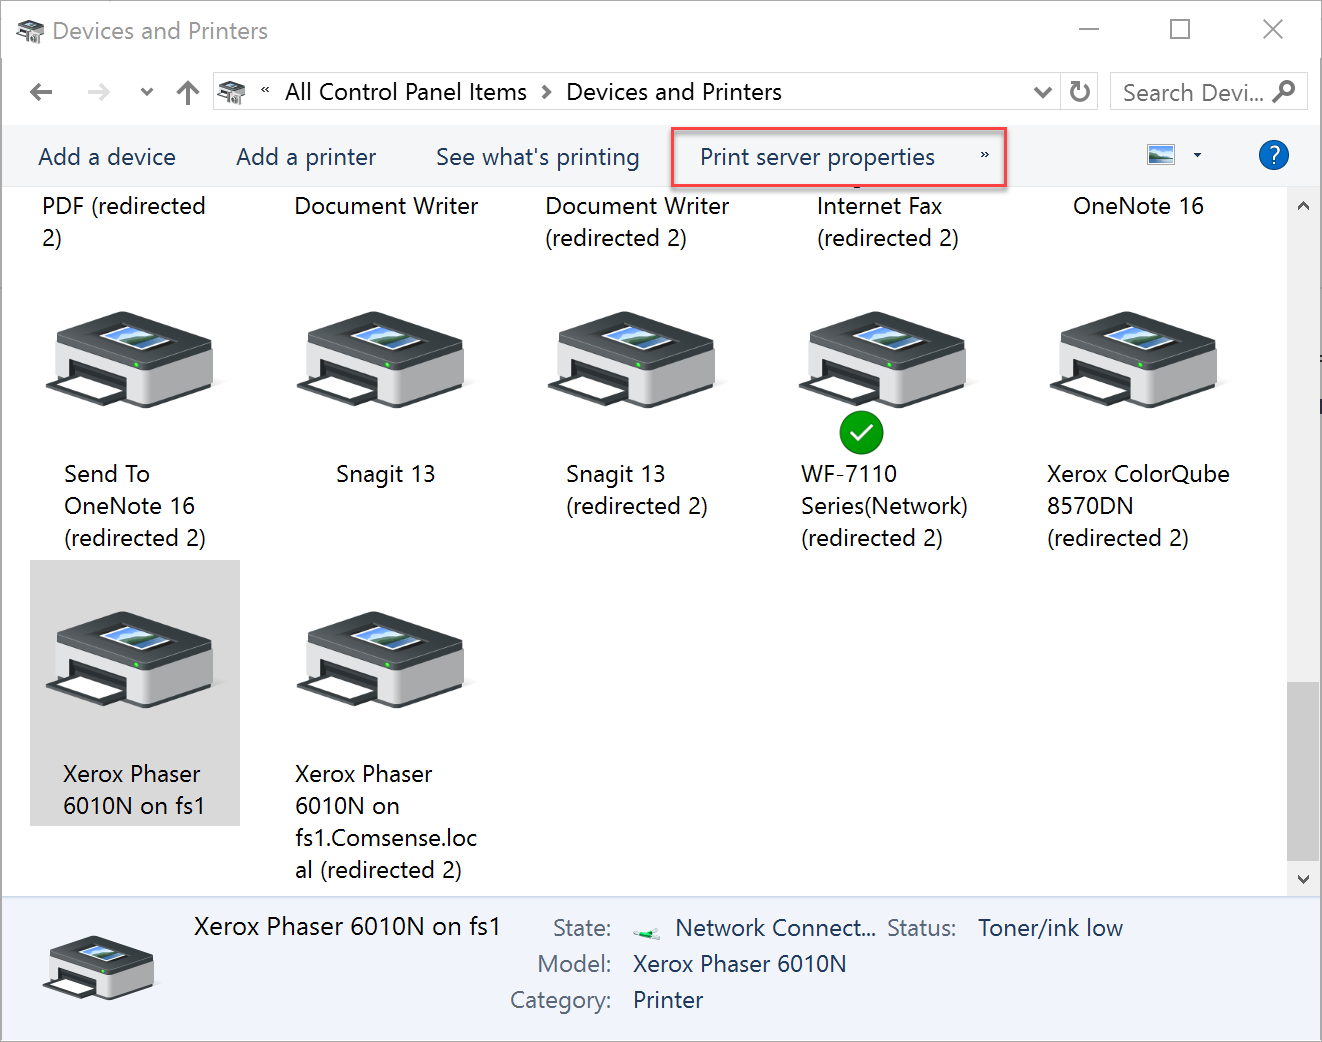 Devices and Printers window showing location of print server properties